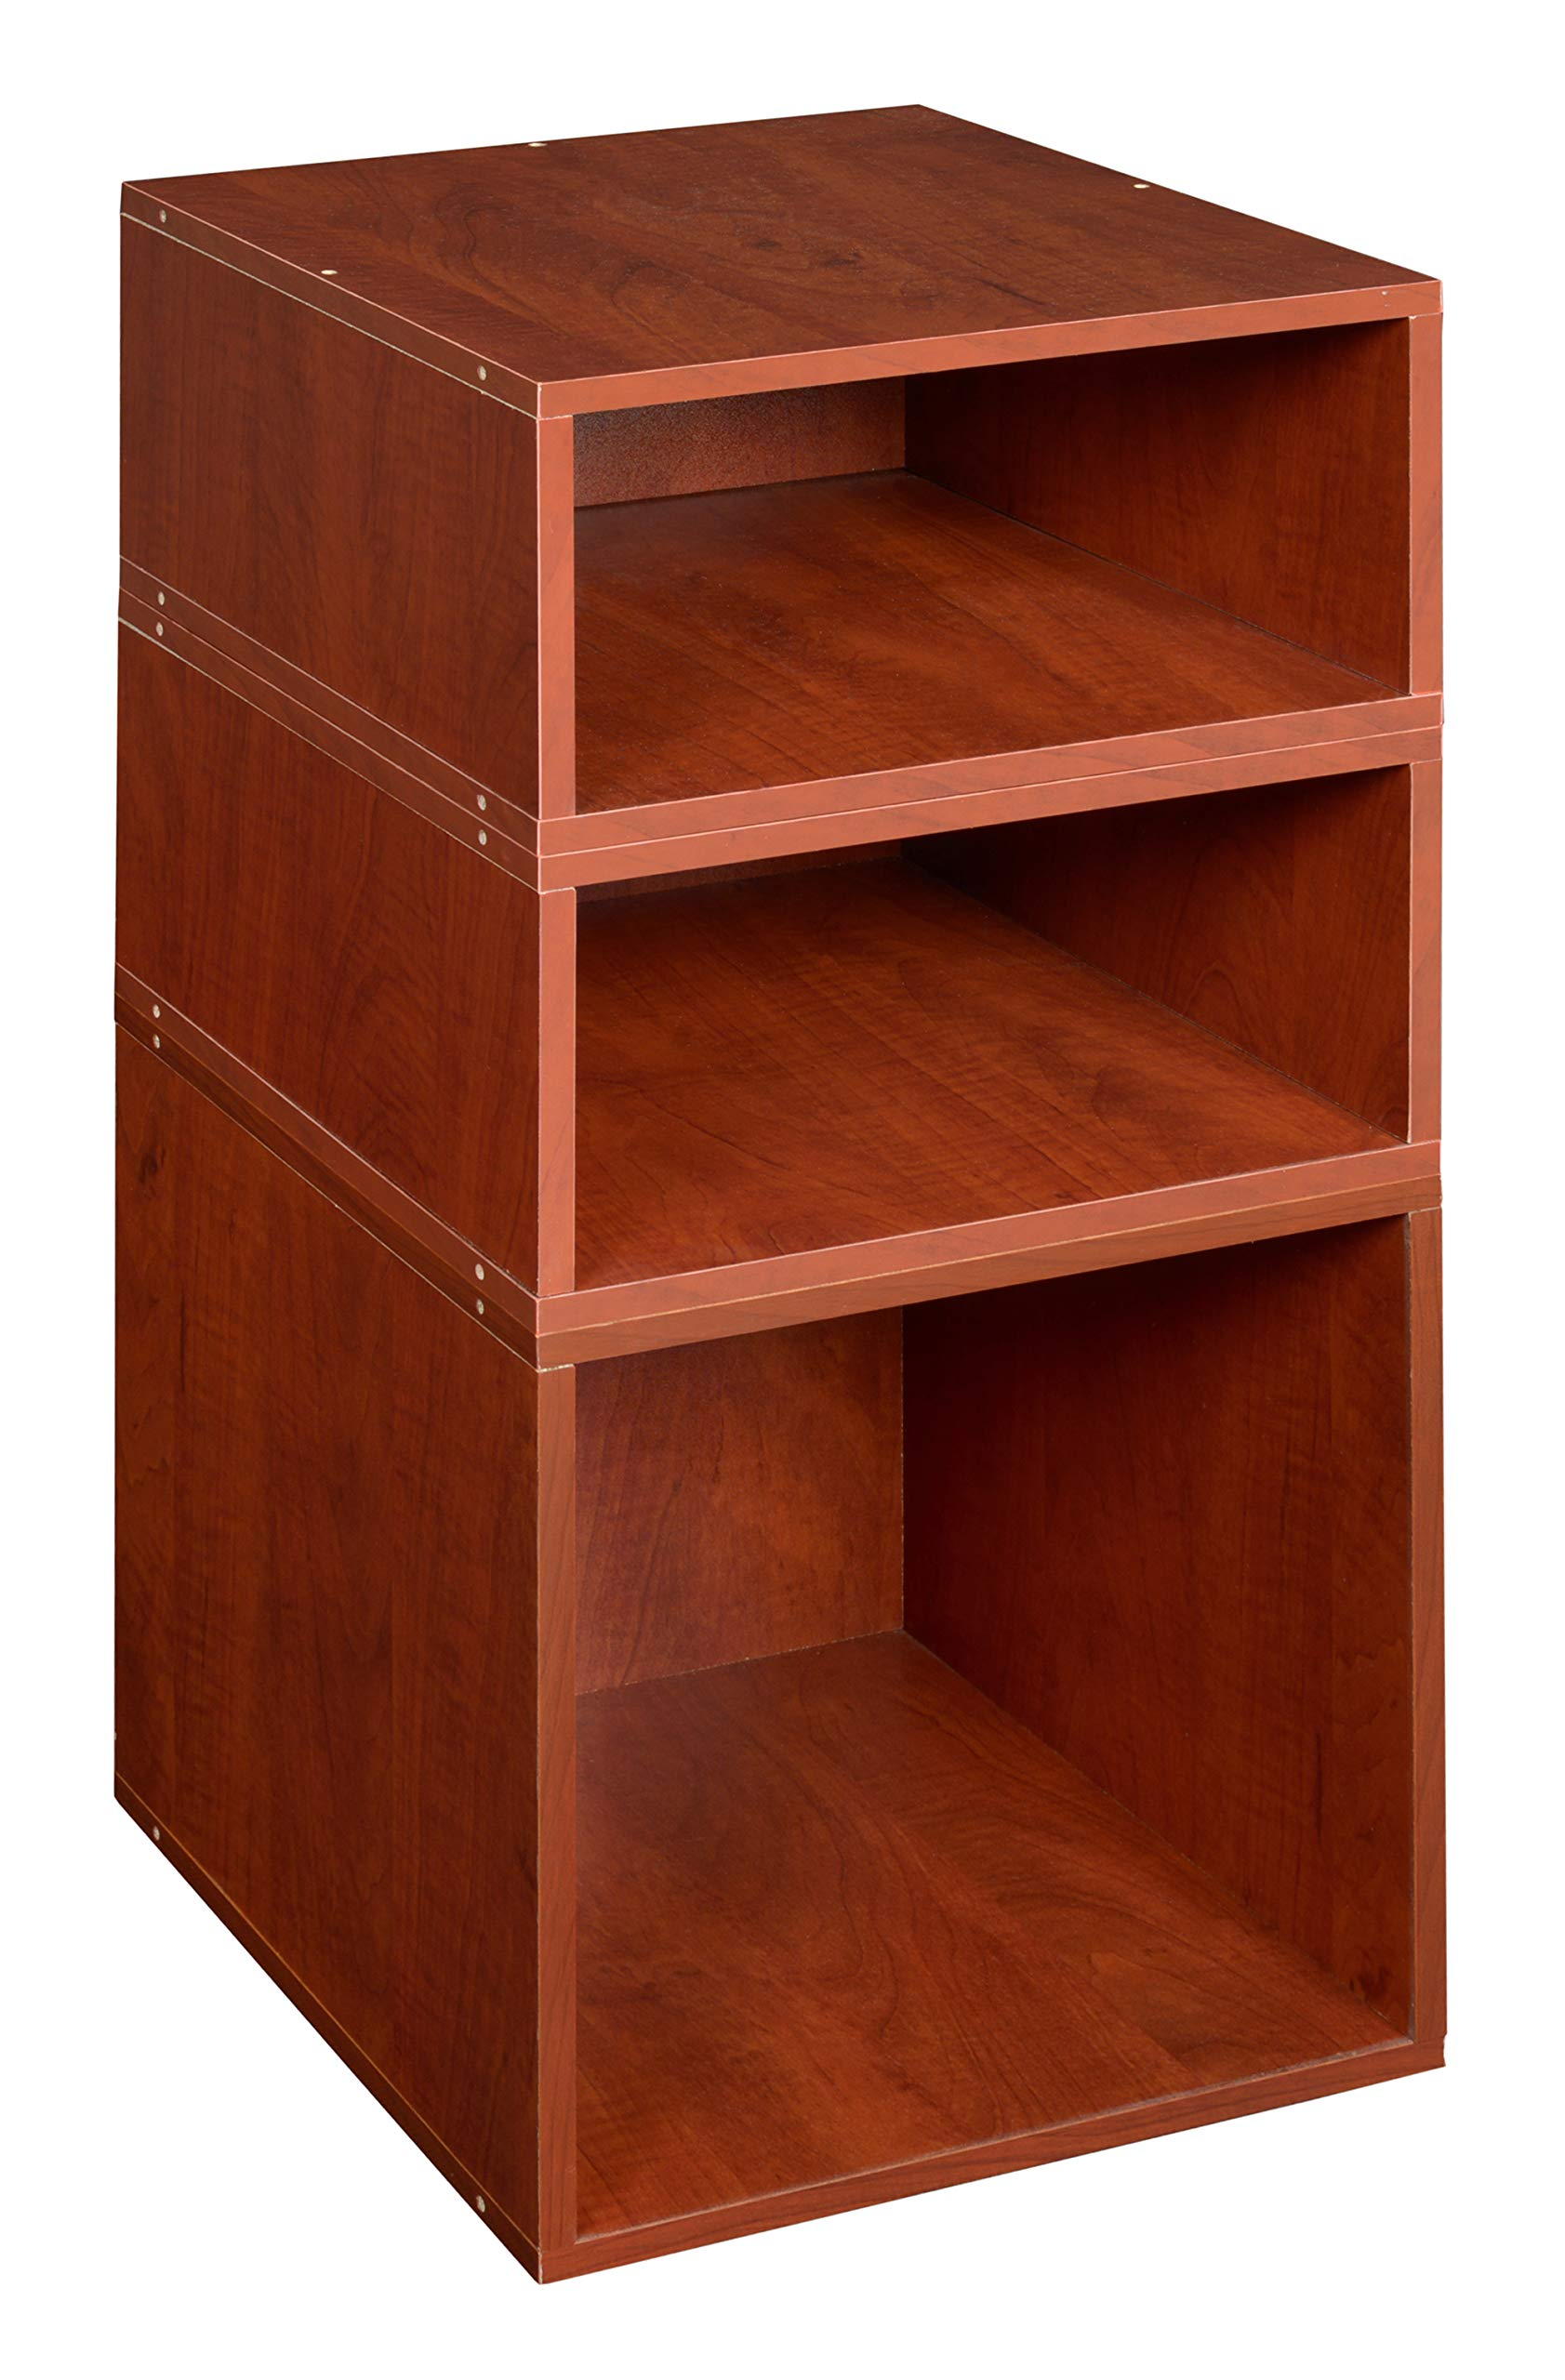 Niche PC1F2HPKWC Cubo Deluxe Storage Set with with Full and Half Size Cubes, 1 2, Cherry